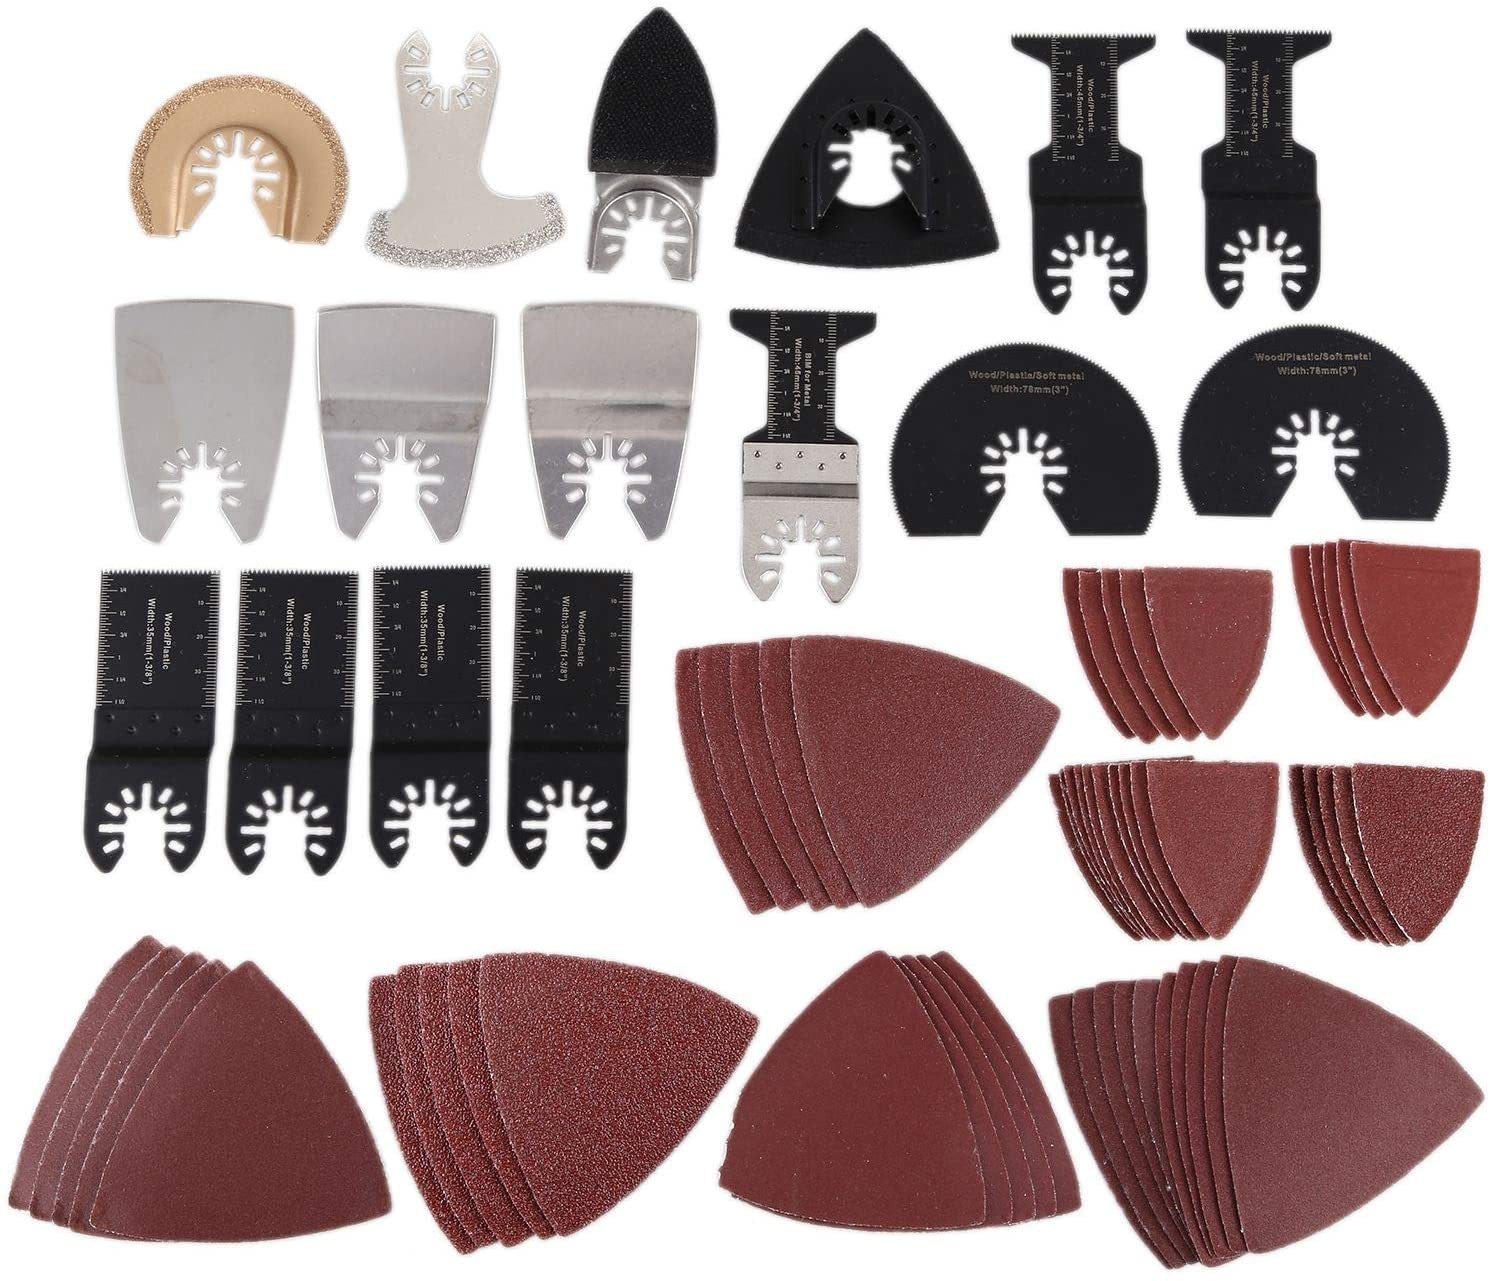 Facibom 70Pcs/Set Multi-Tool Oscillating Saw Blades Accessory Kit Oscillating Tool Blades for Sanding Grinding and Cutting